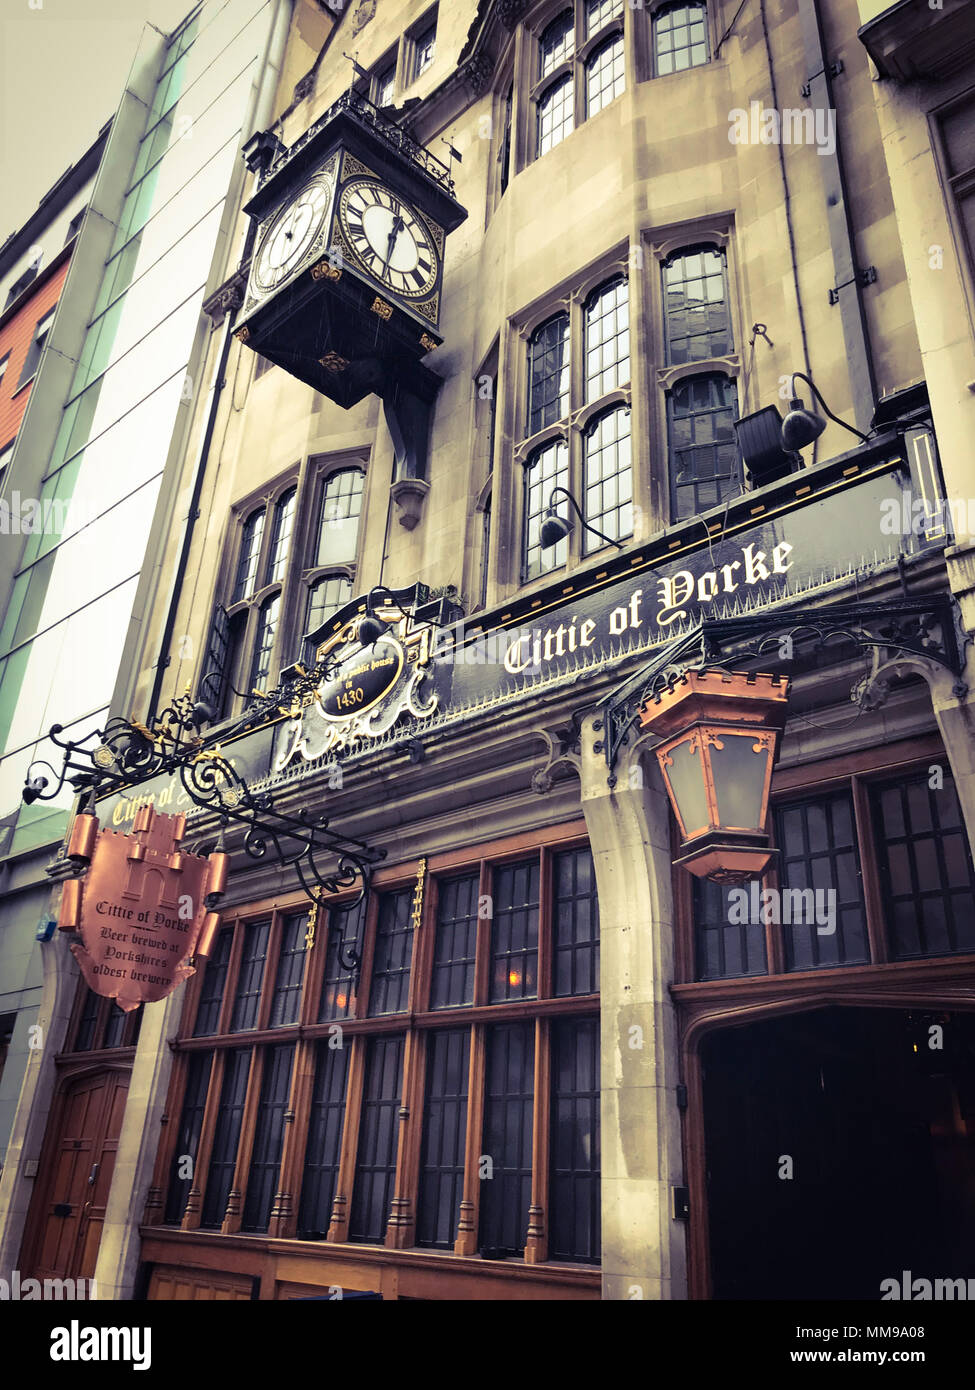 Citte Of Yorke Pub, Chancelry Lane, Holborn, London, England, UK - Stock Image